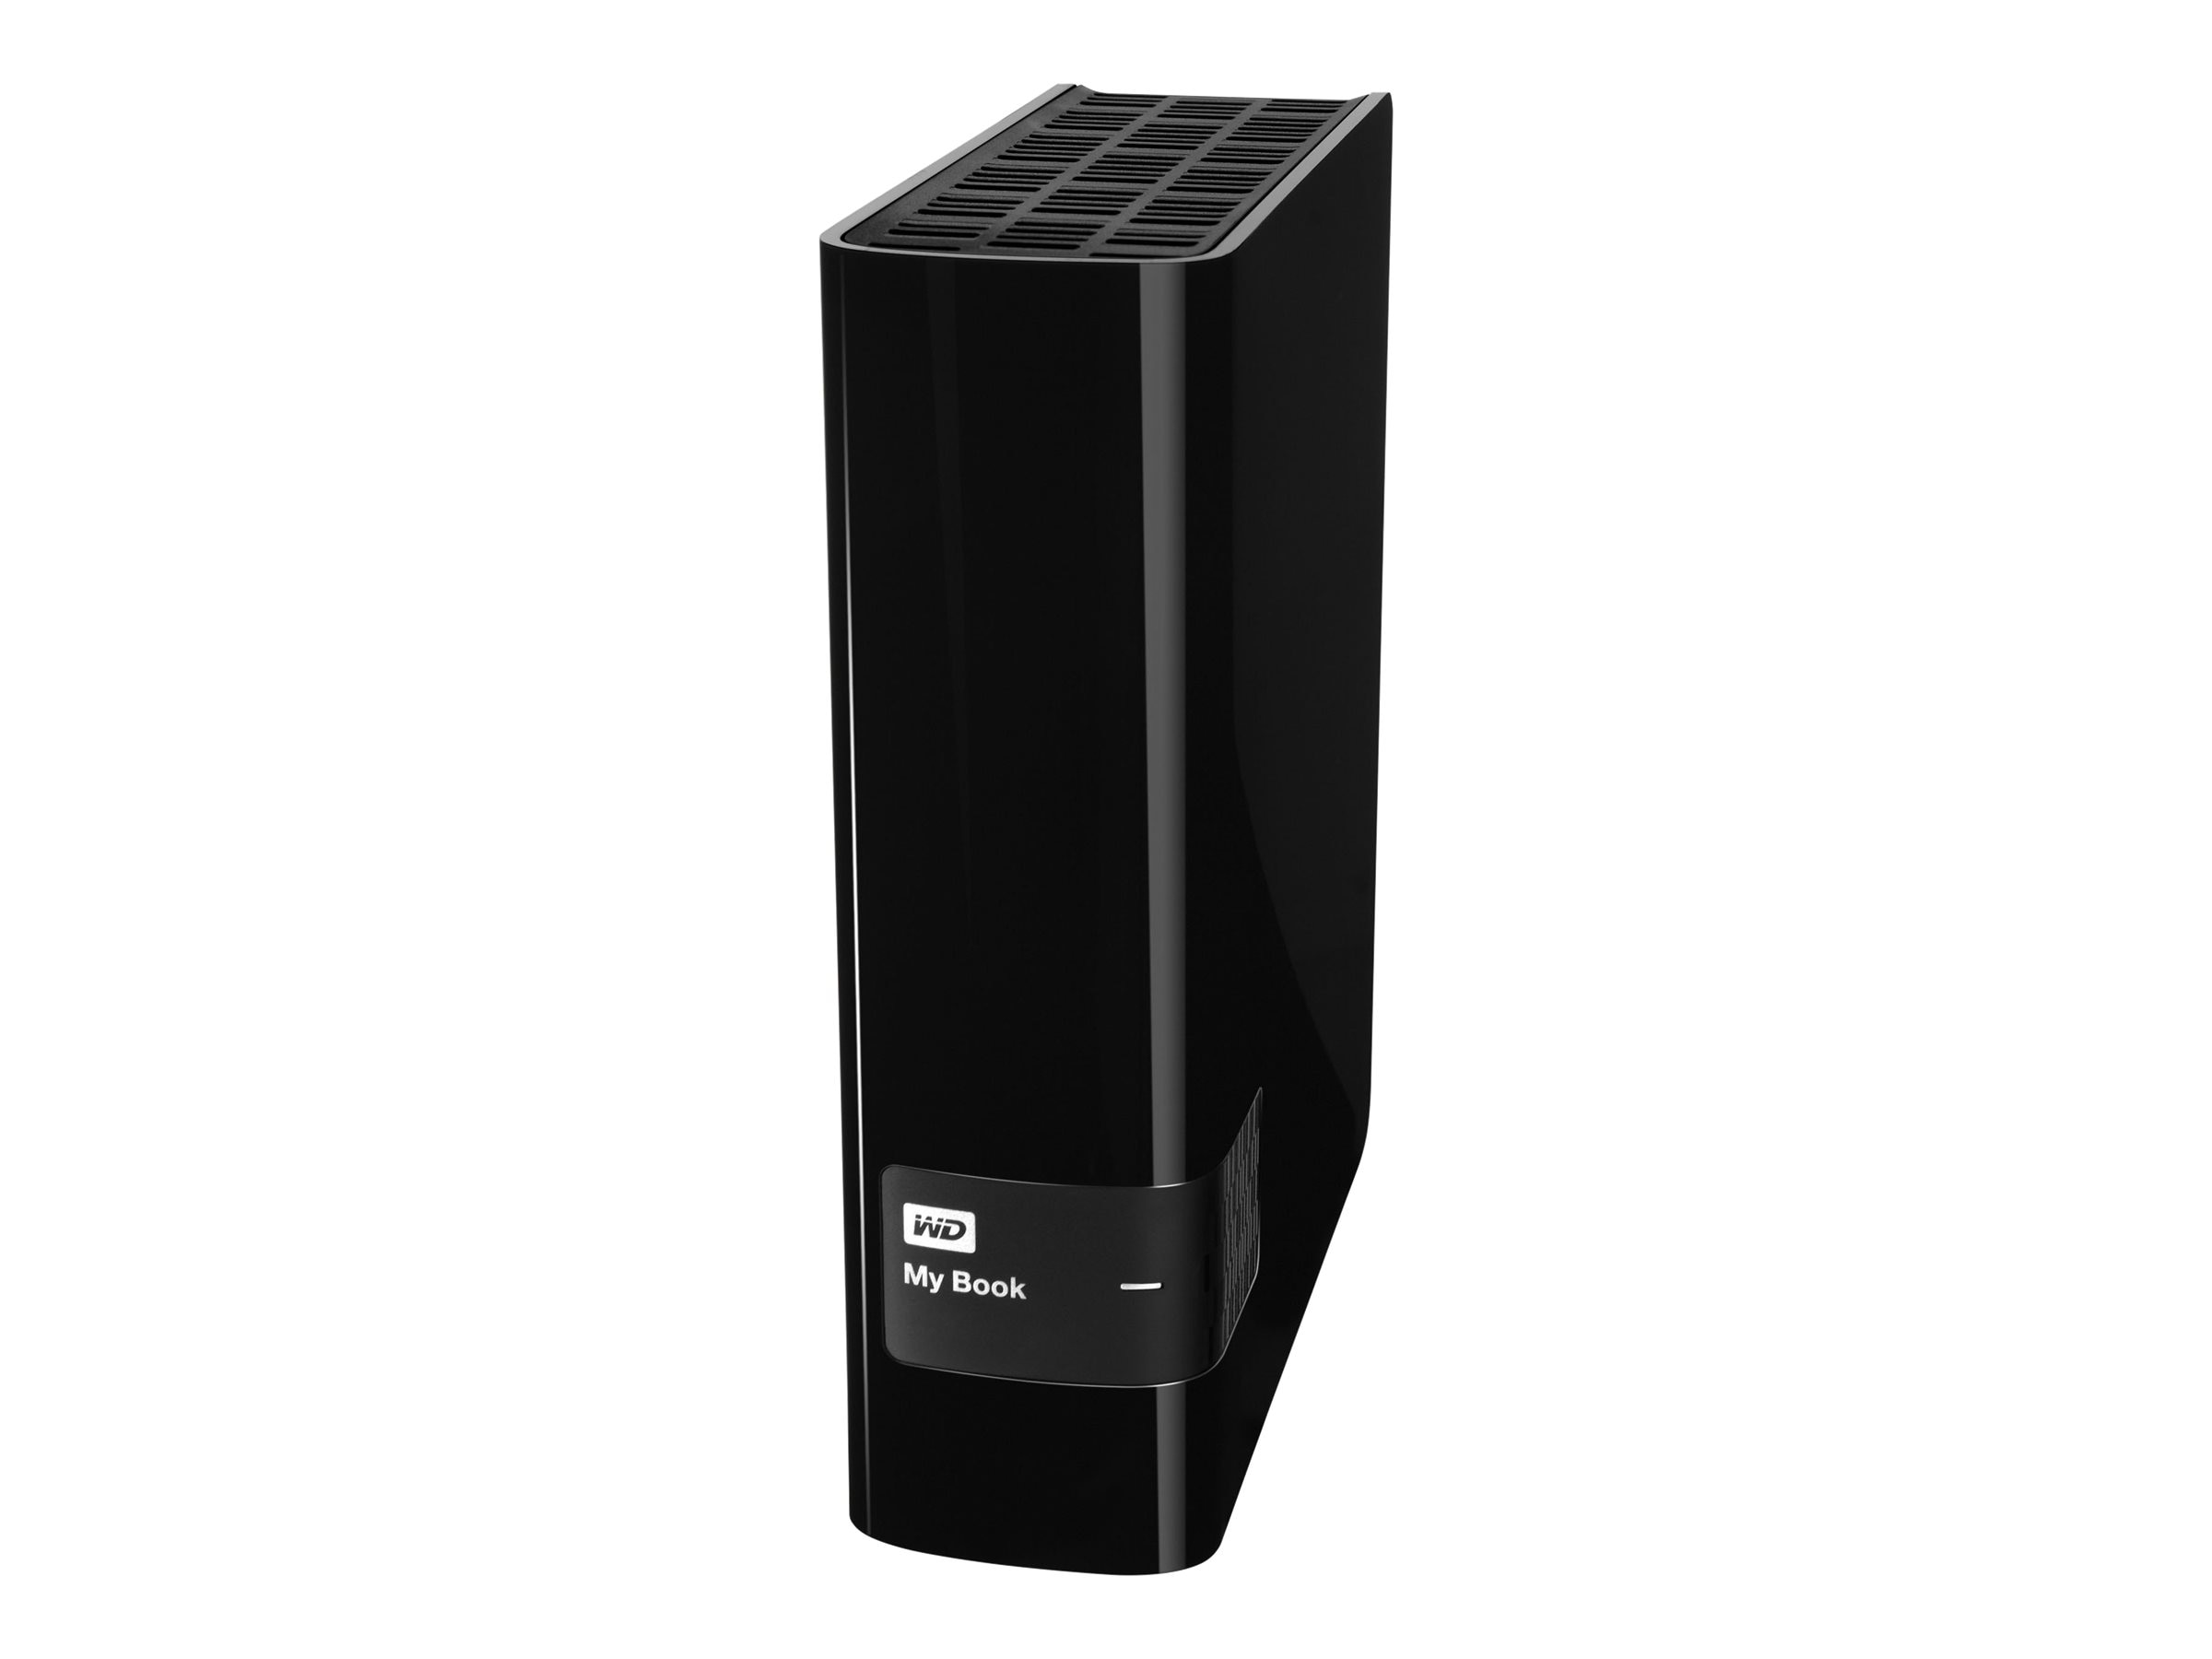 WD 2TB My Book for Mac USB 3.0 External Hard Drive, WDBYCC0020HBK-NESN, 16233175, Hard Drives - External